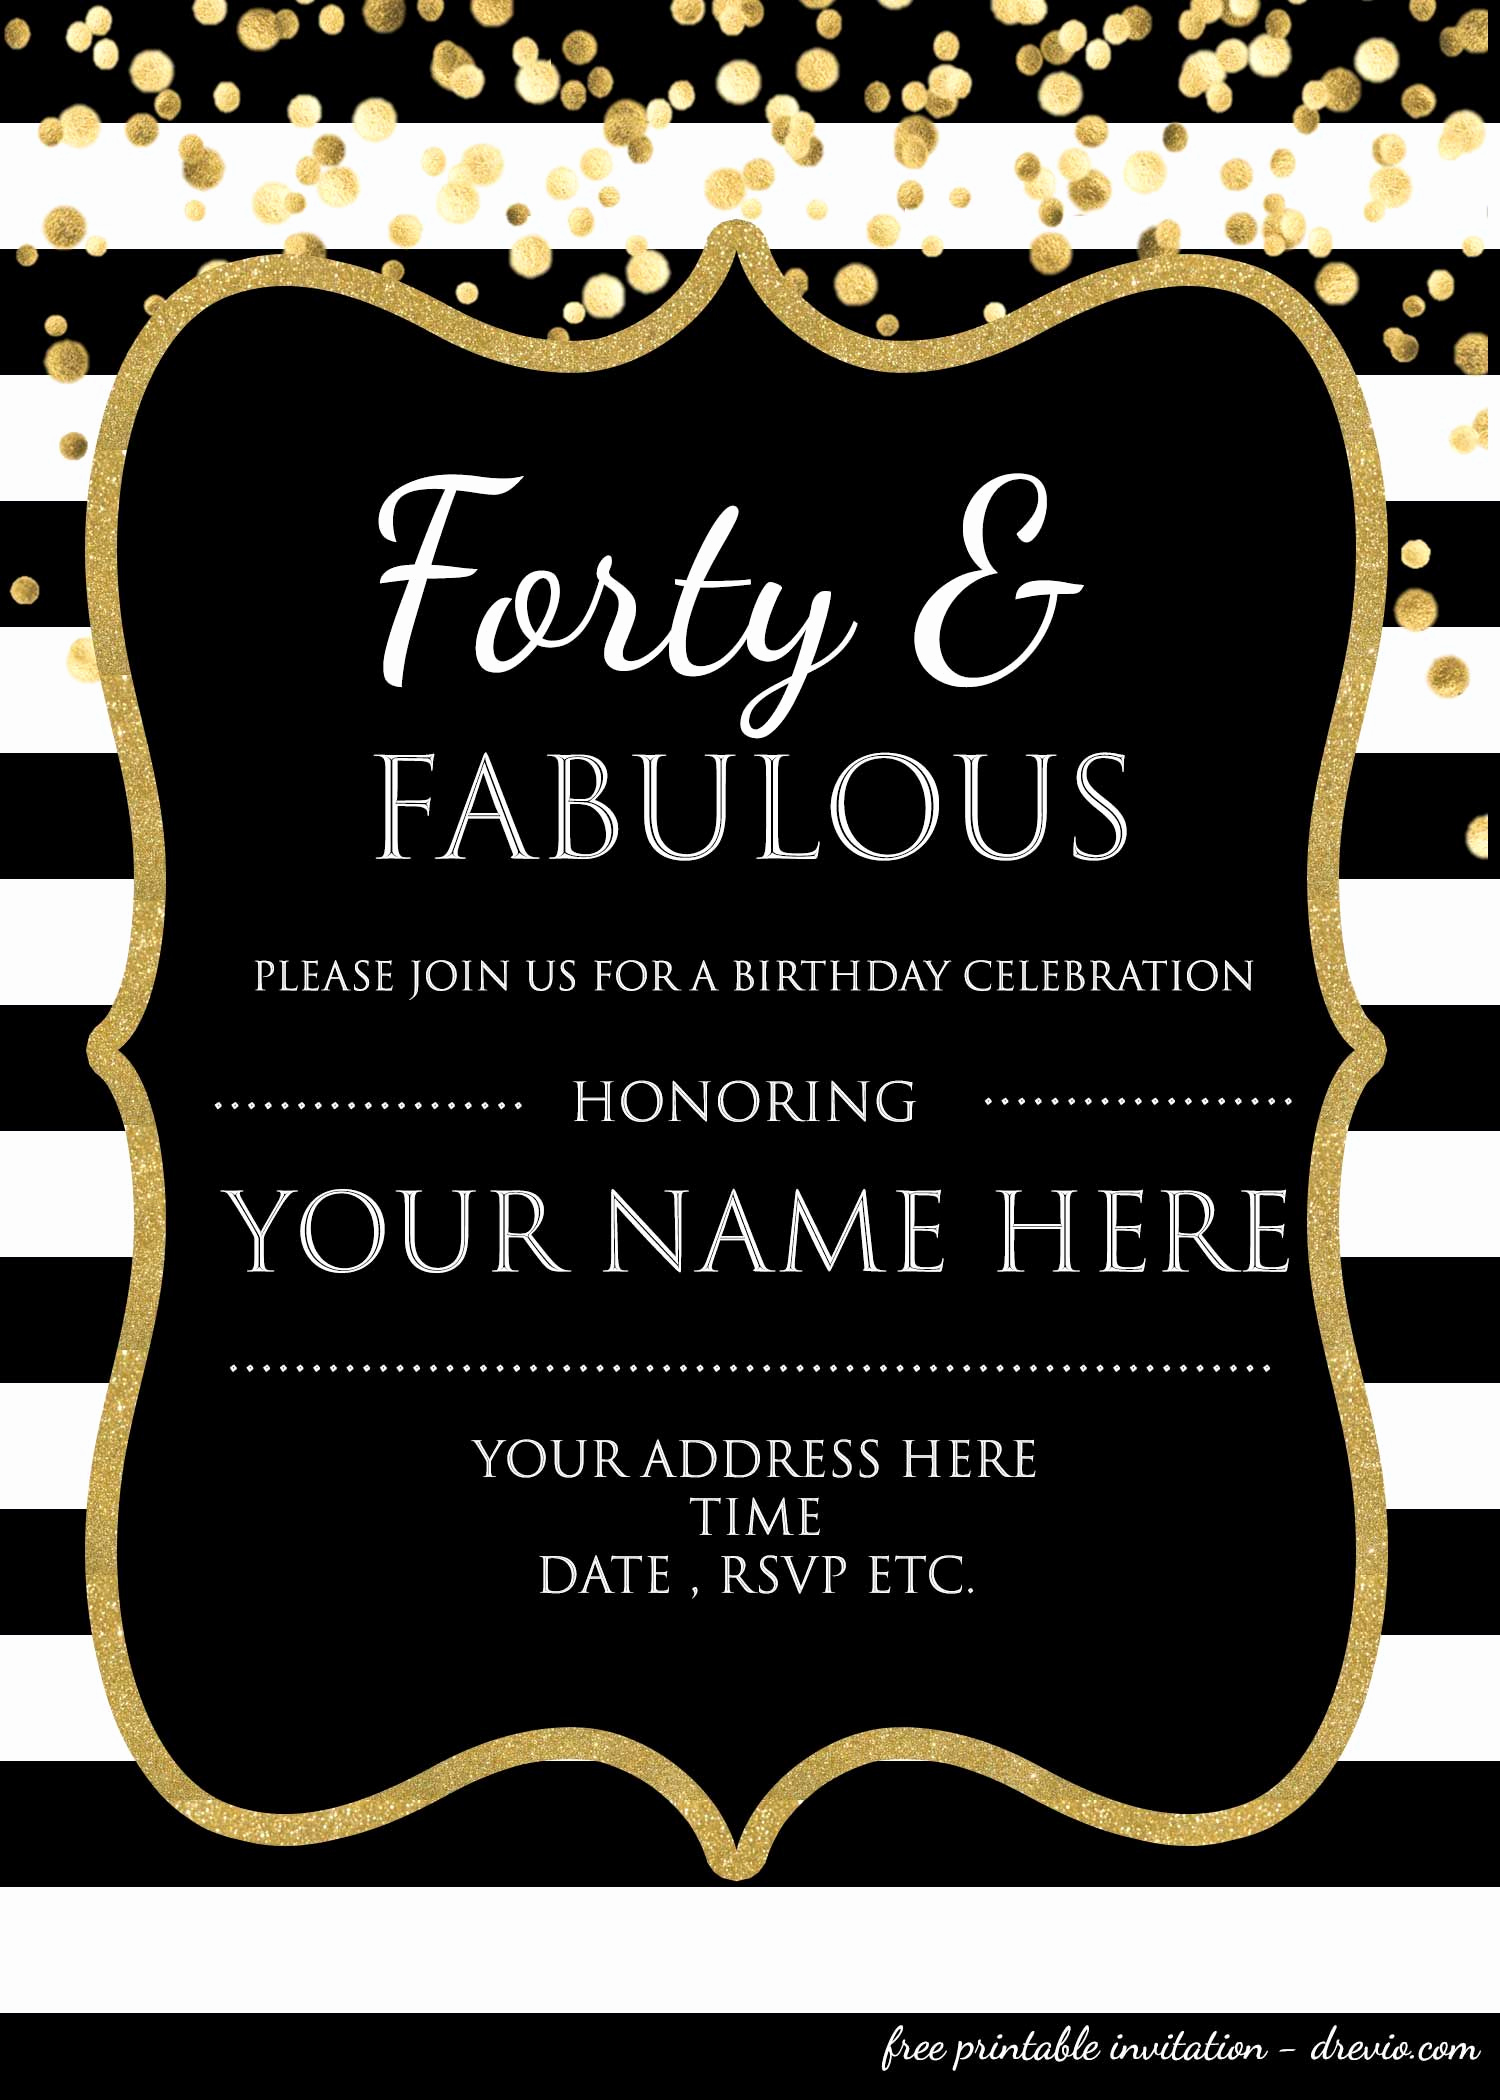 40th Birthday Invitation Ideas Inspirational forty & Fabulous 40th Birthday Invitation Template Psd